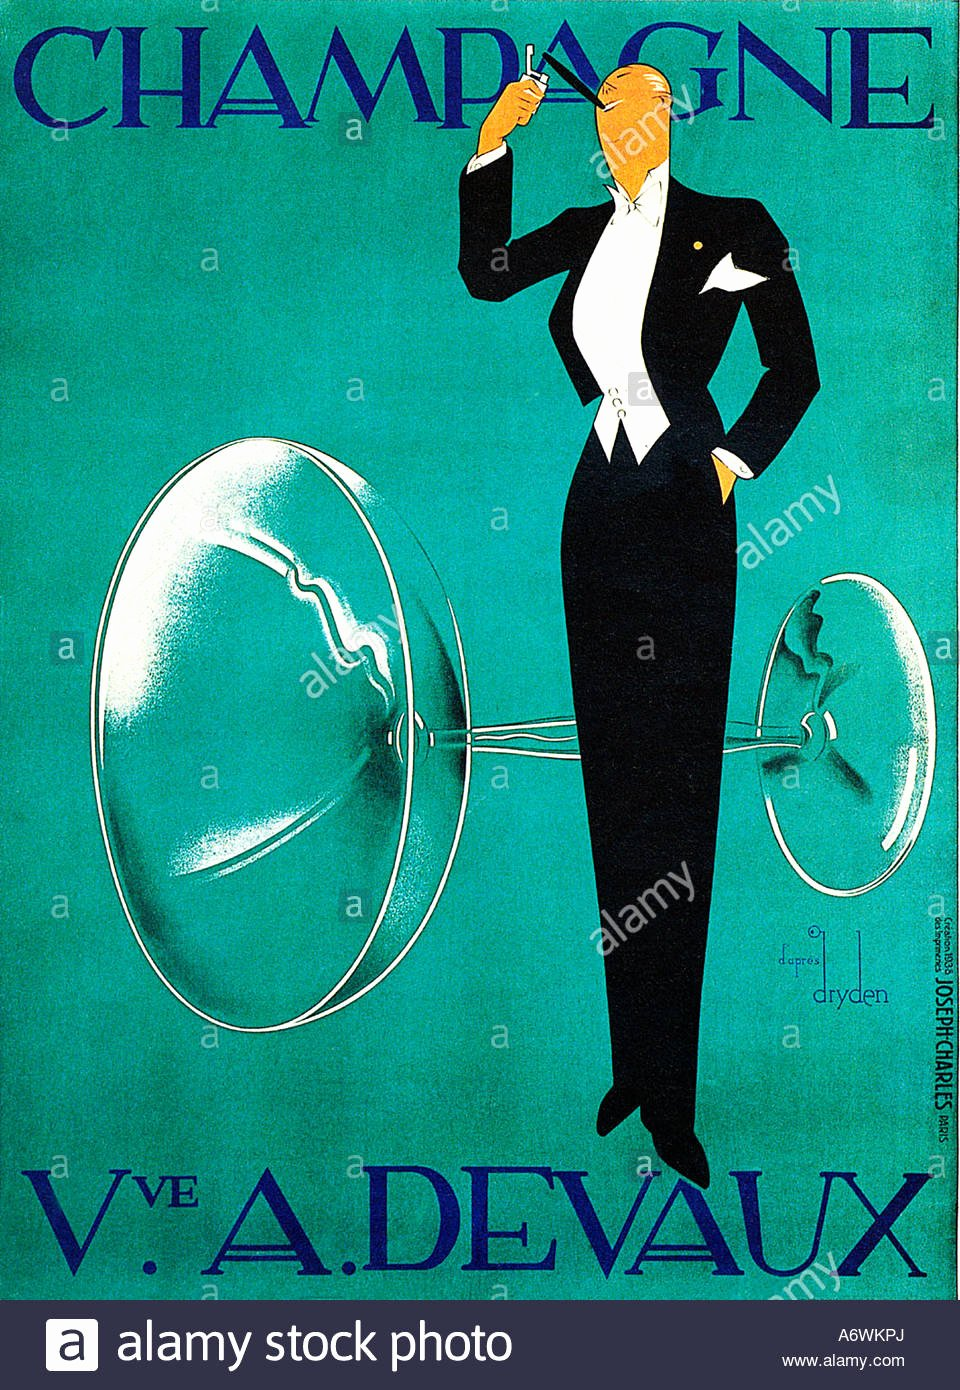 Famous Art Deco Posters Fresh Champagne Devaux the Famous 1930s Art Deco Poster for the